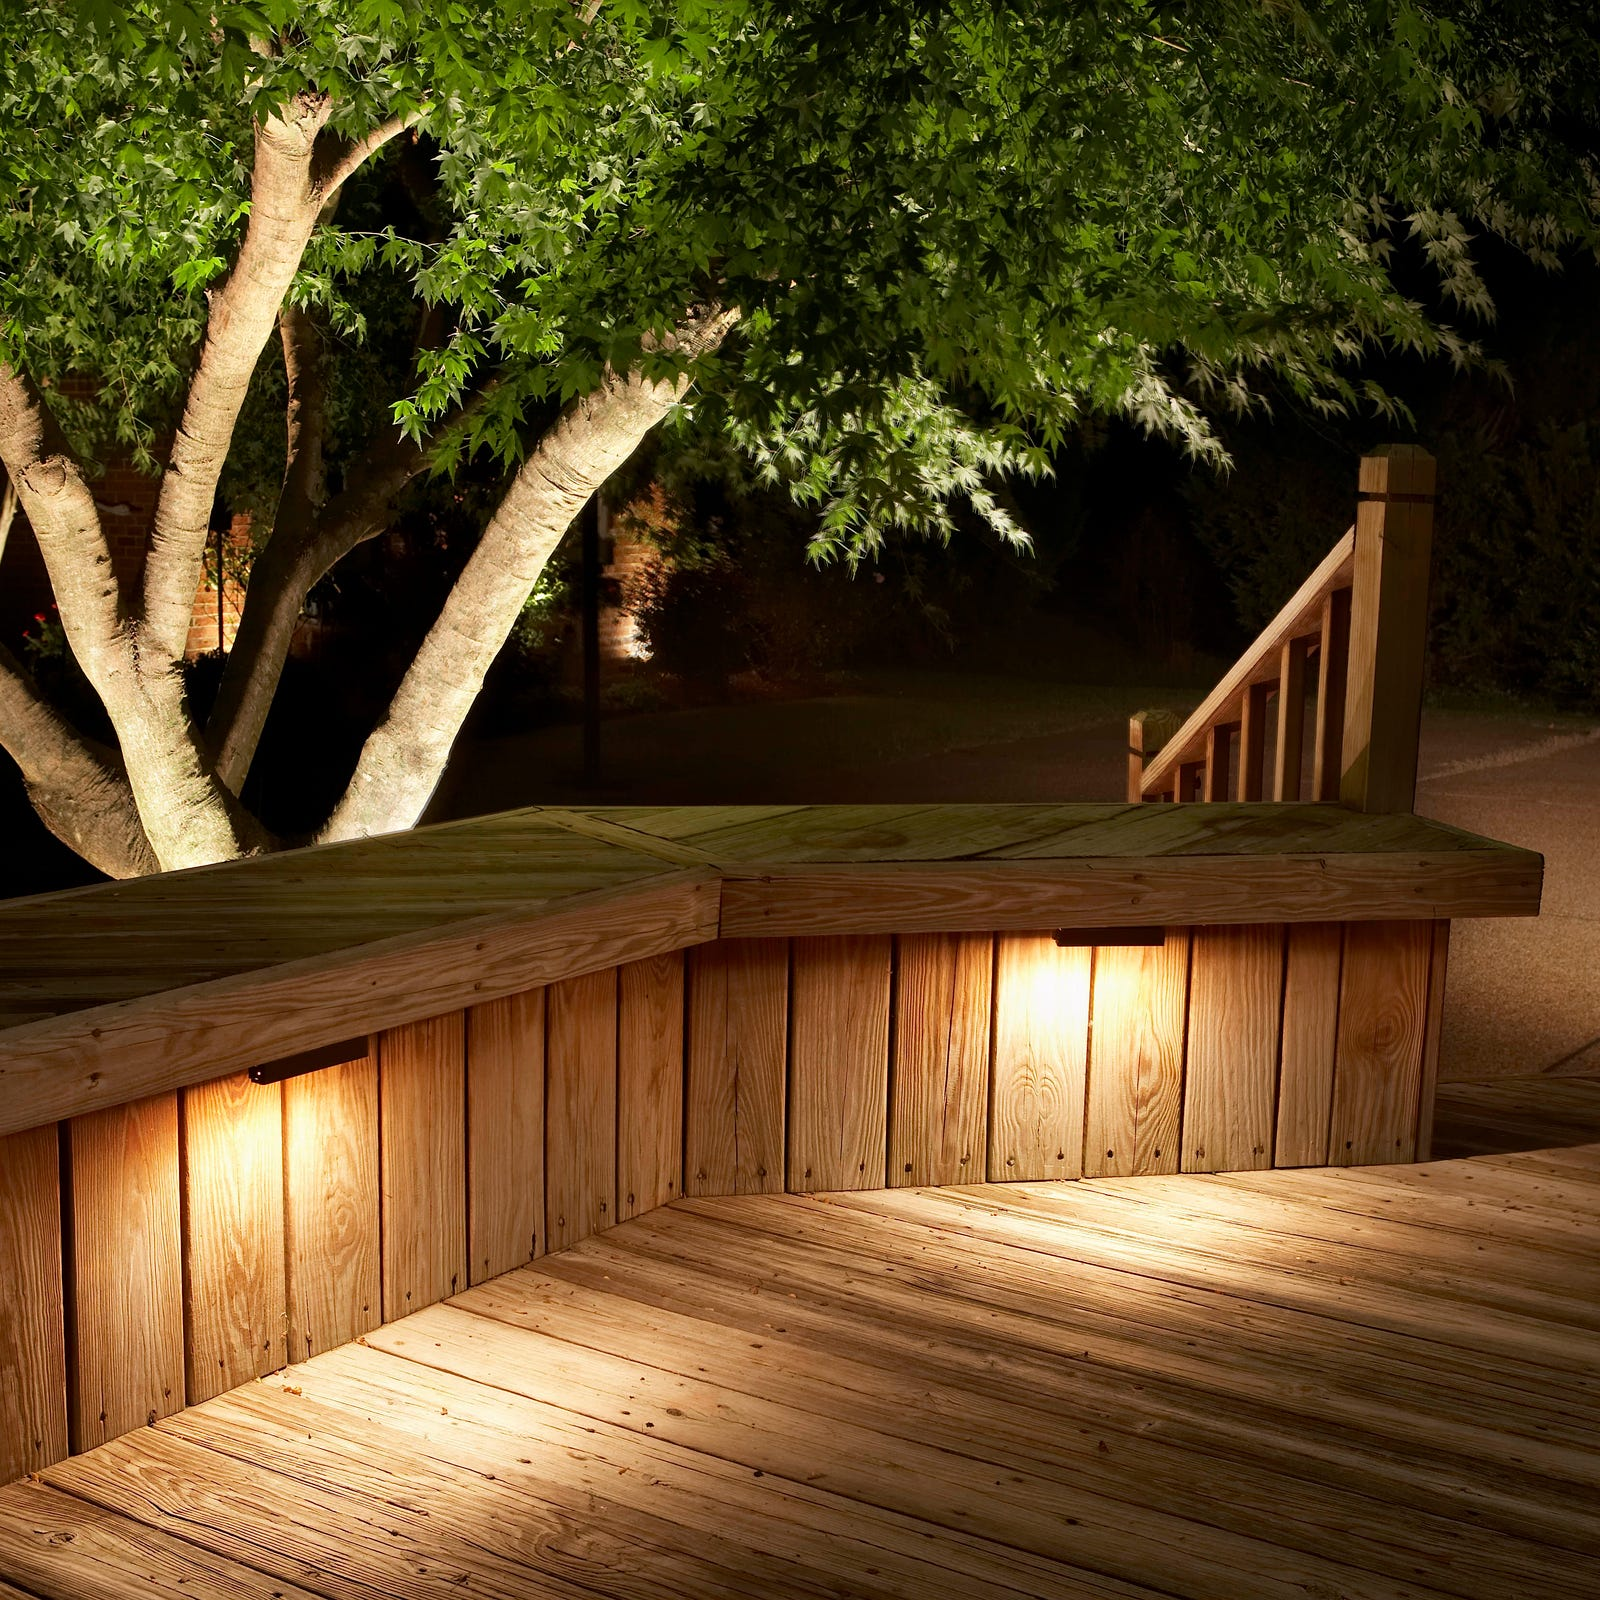 Awash in light: Make your property stunningly visible even in the dark